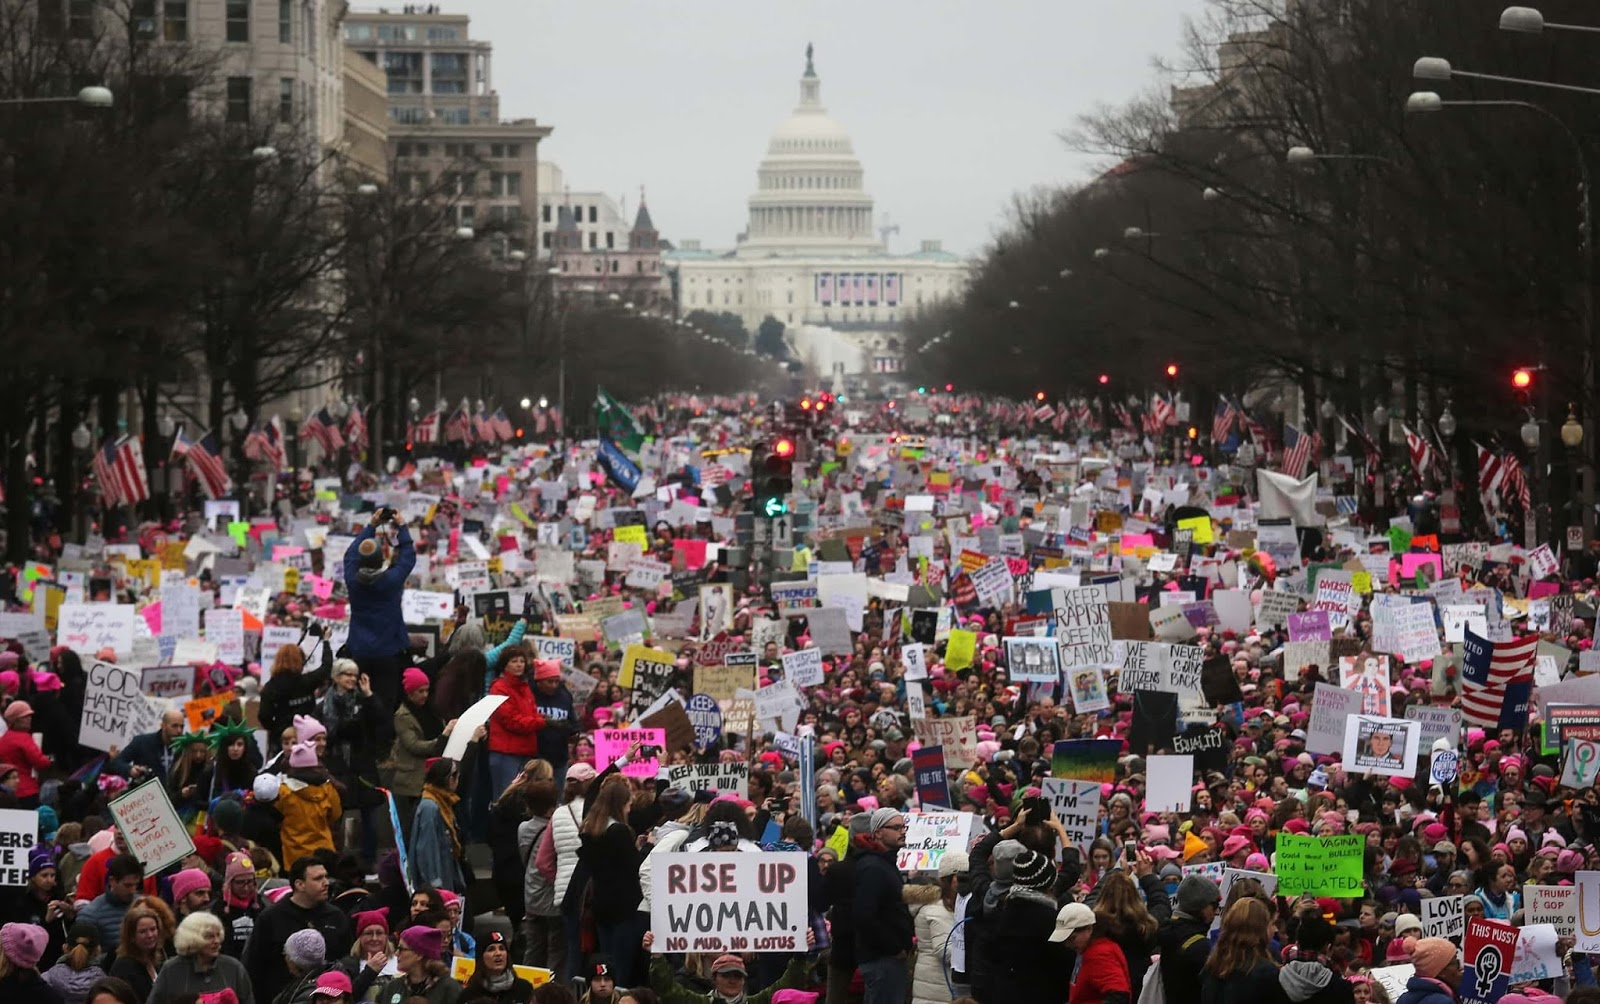 25 Of The Most Intriguing Pictures Of 2017 - Women's March on Washington